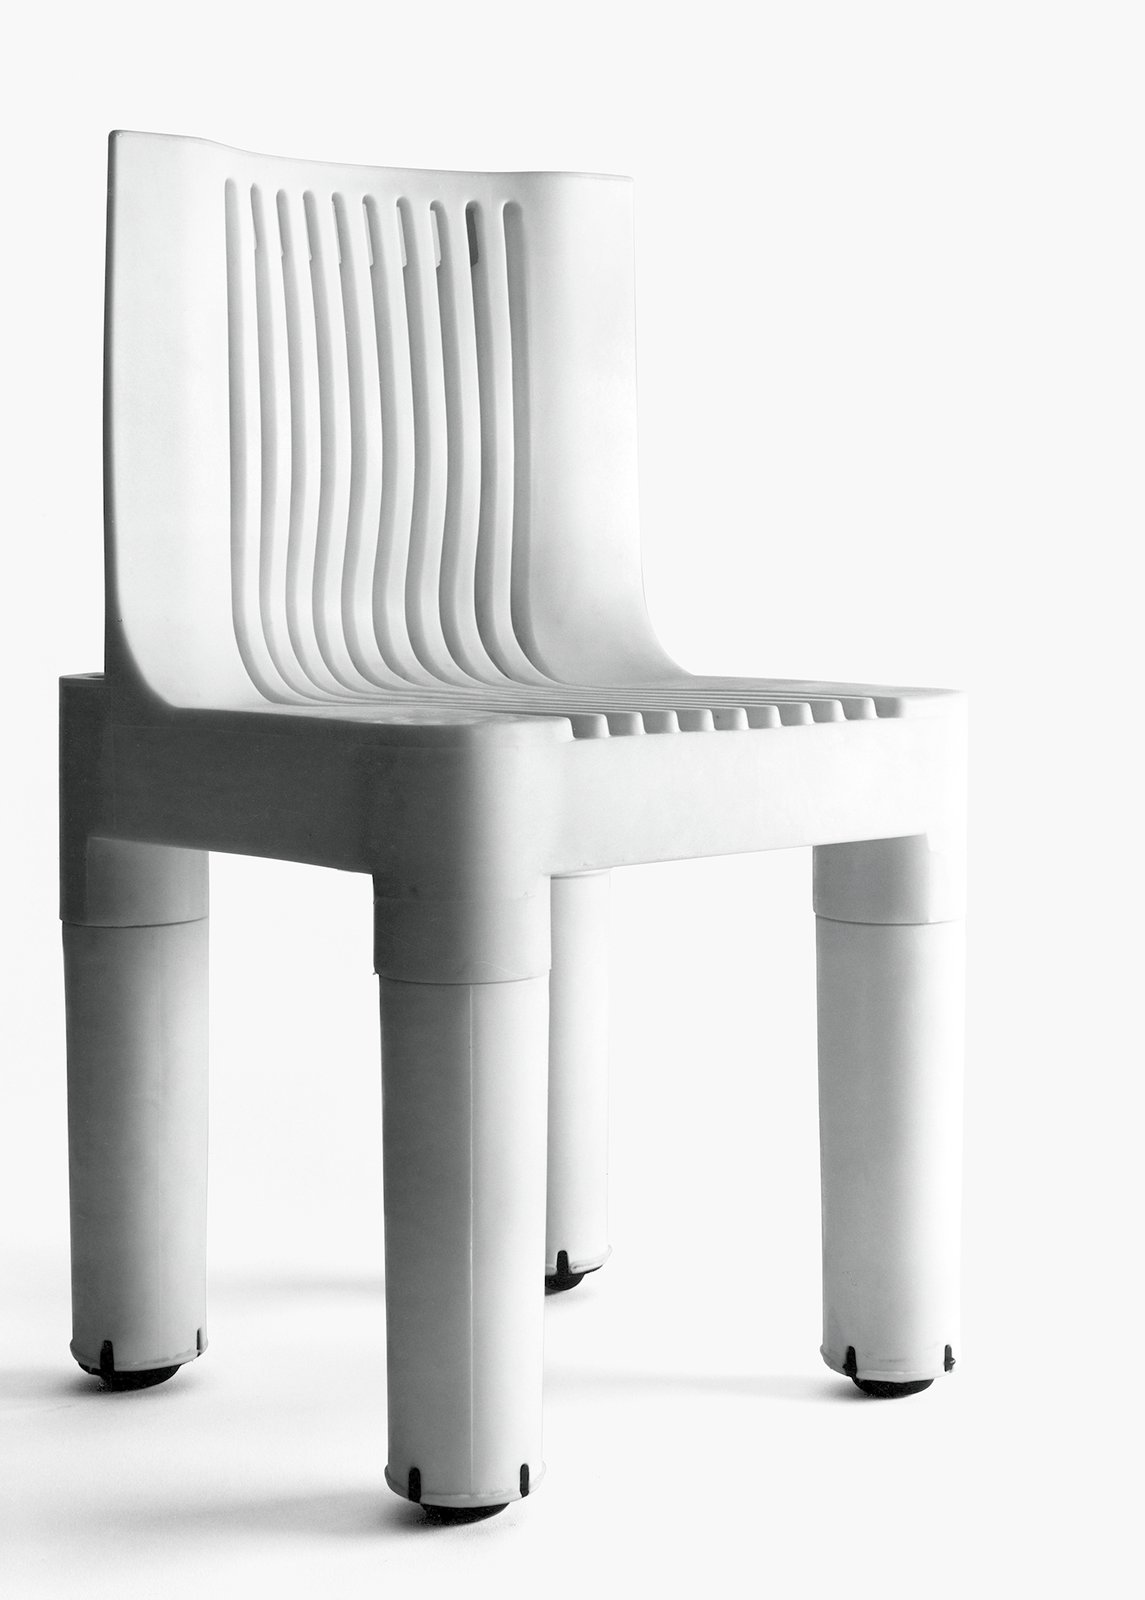 K 1340, Polyethylene children's chair designed by Marco Zanuso, Kartell, 1964.  Photo 3 of 7 in Only Richard Sapper Could Turn the Hairdryer Into a Masterpiece